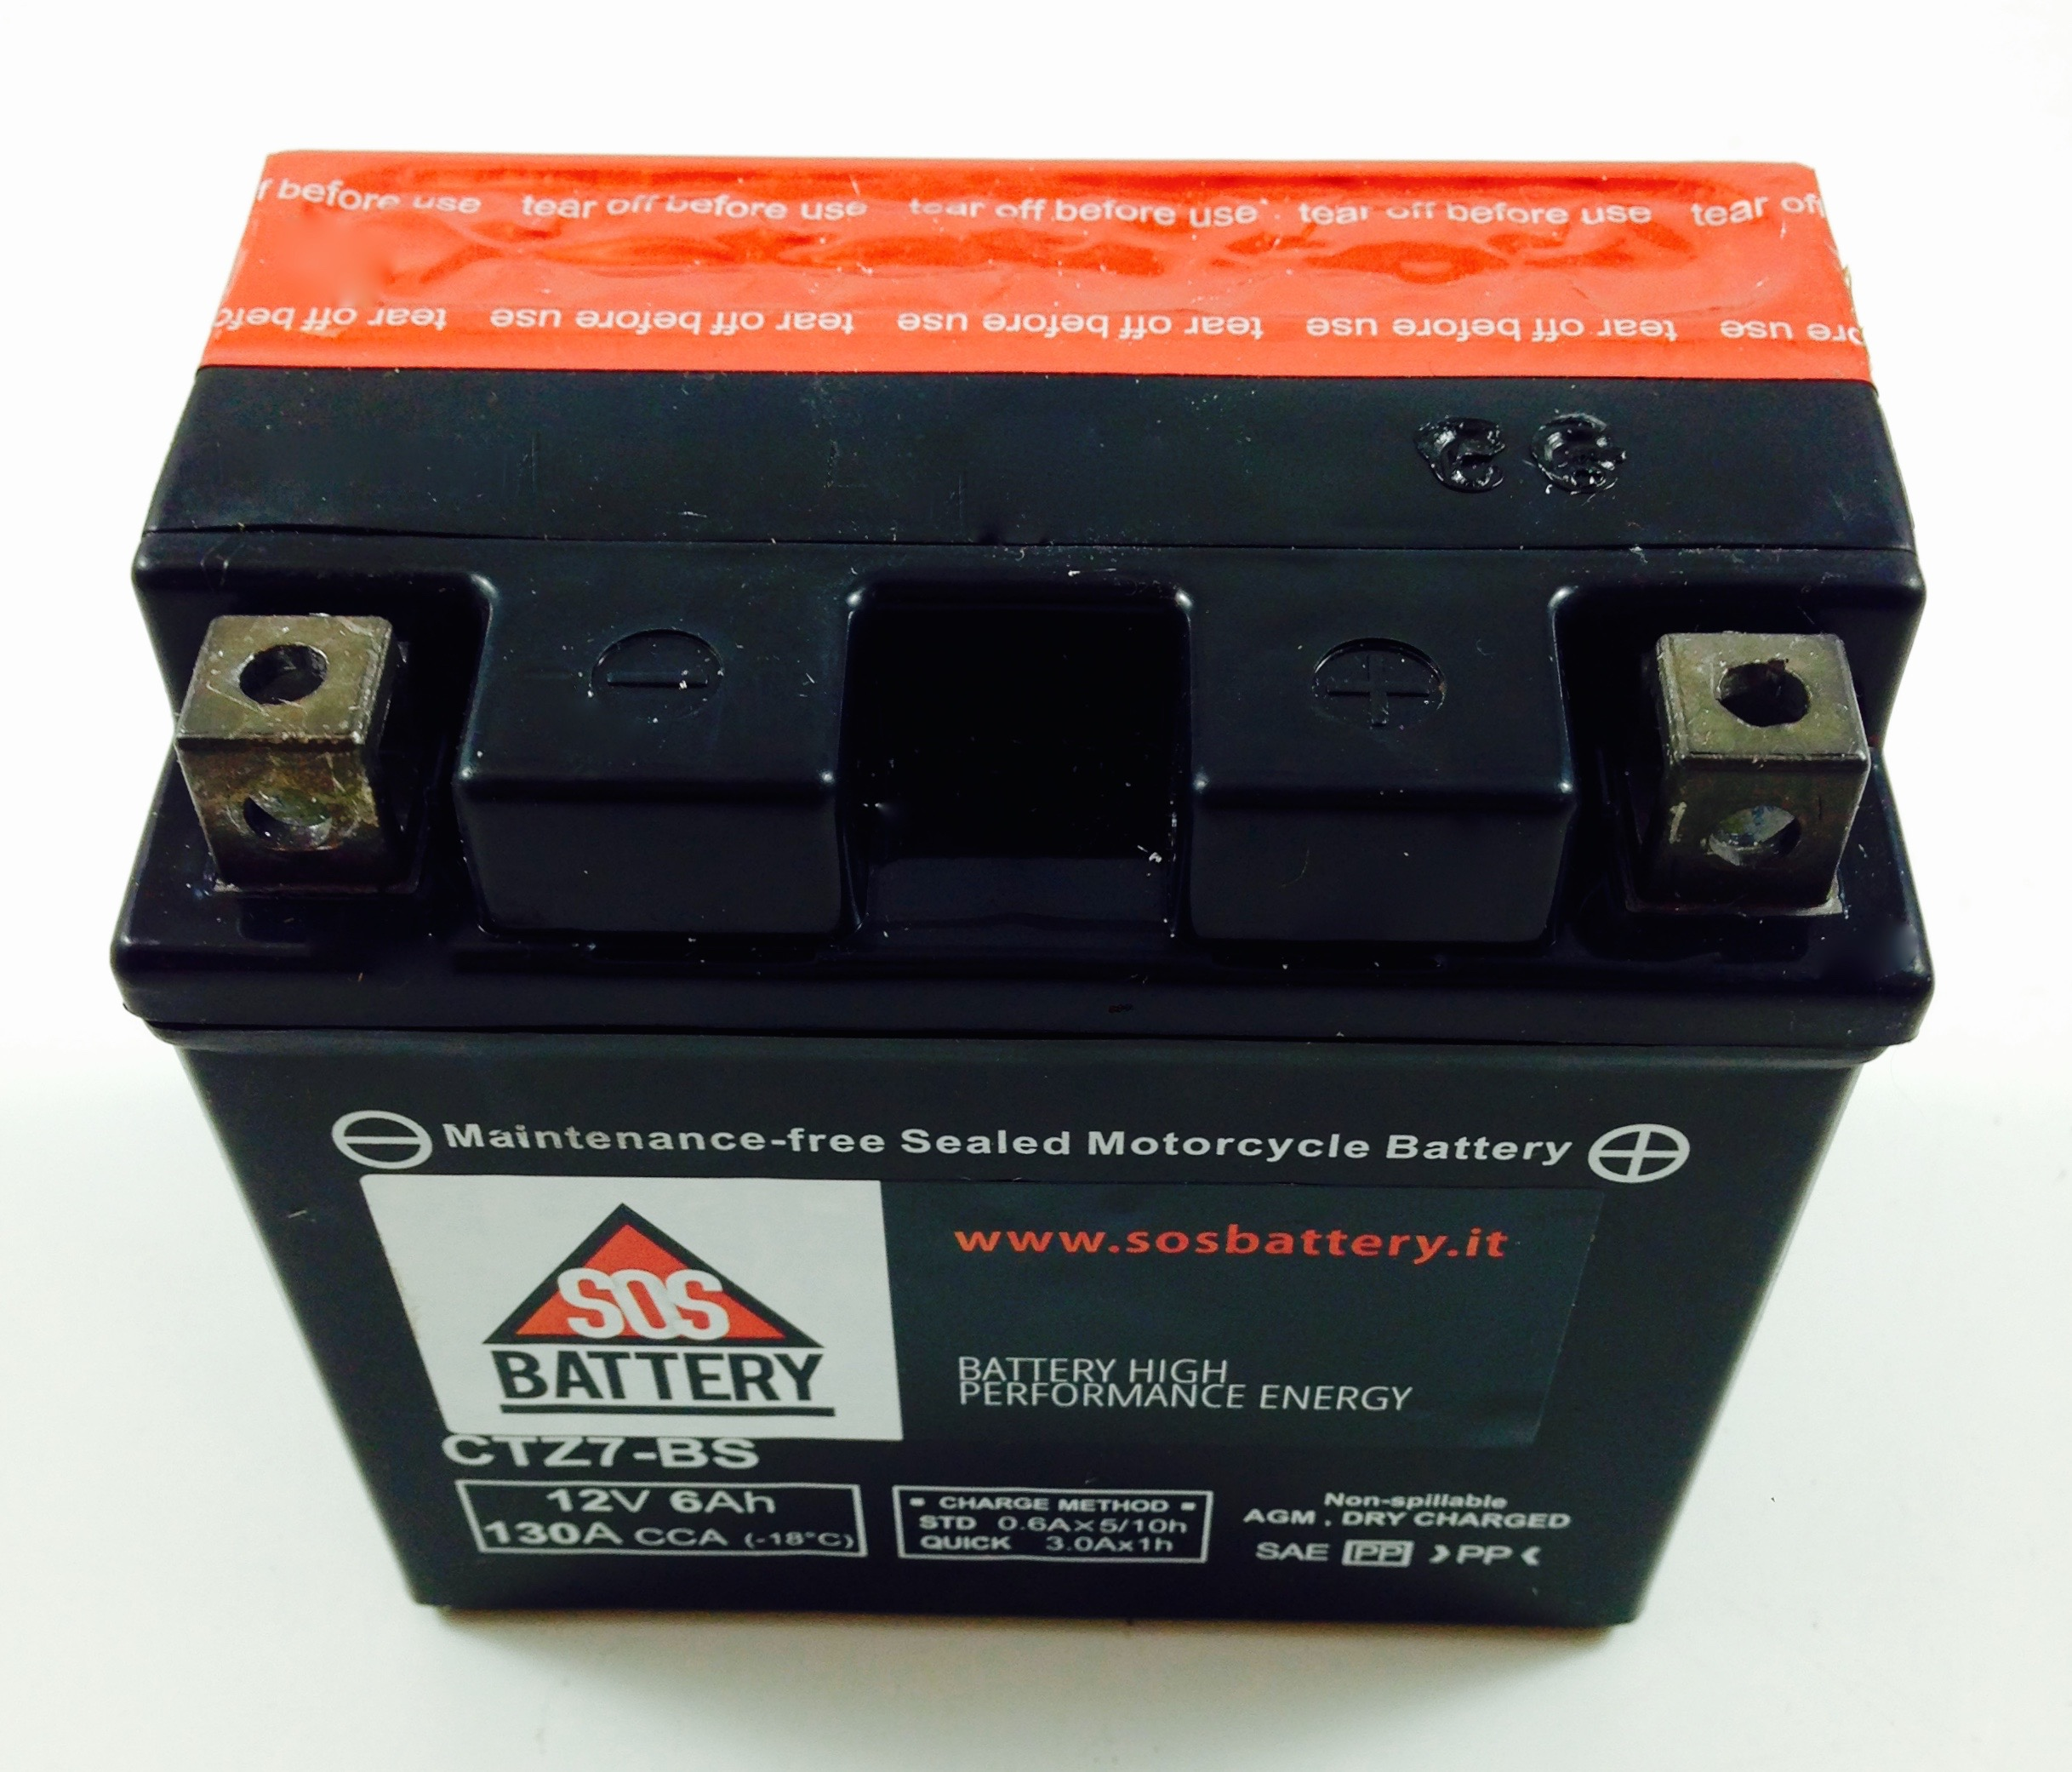 BATTERIA MOTO-SCOOTER SOS BATTERY 12V 6AH BM 620 SIGILLATA